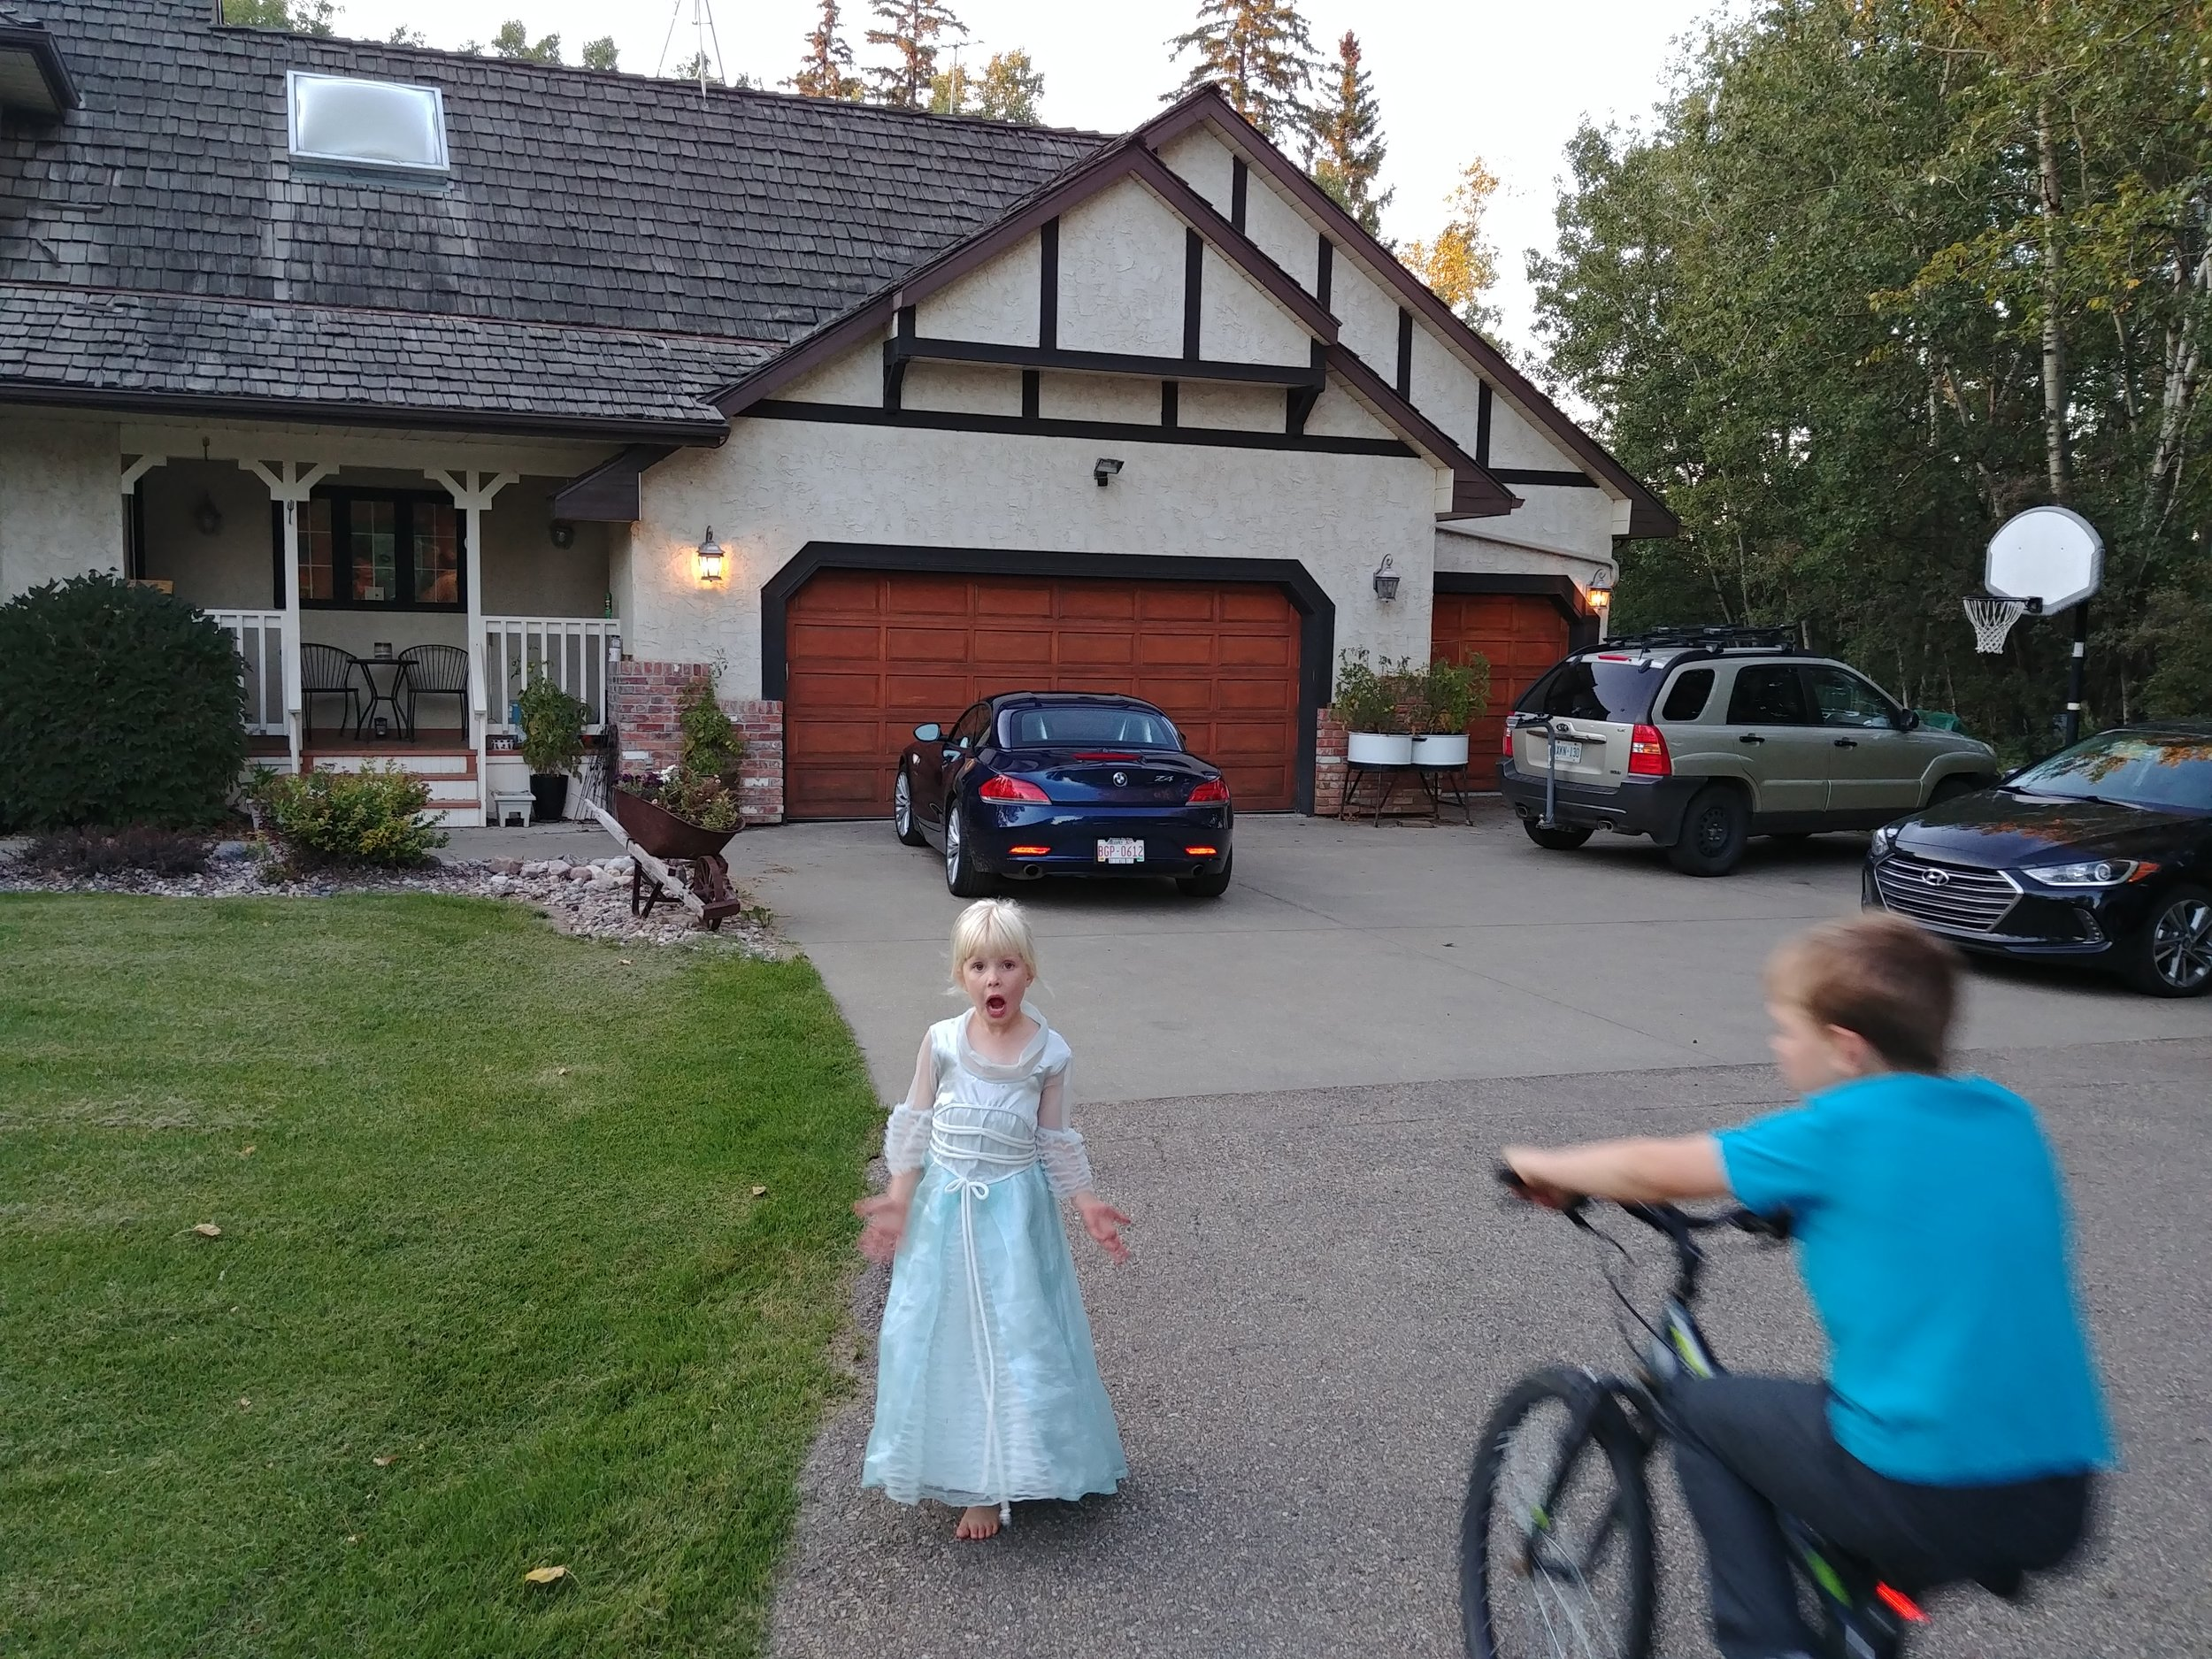 The princess and her cottage…